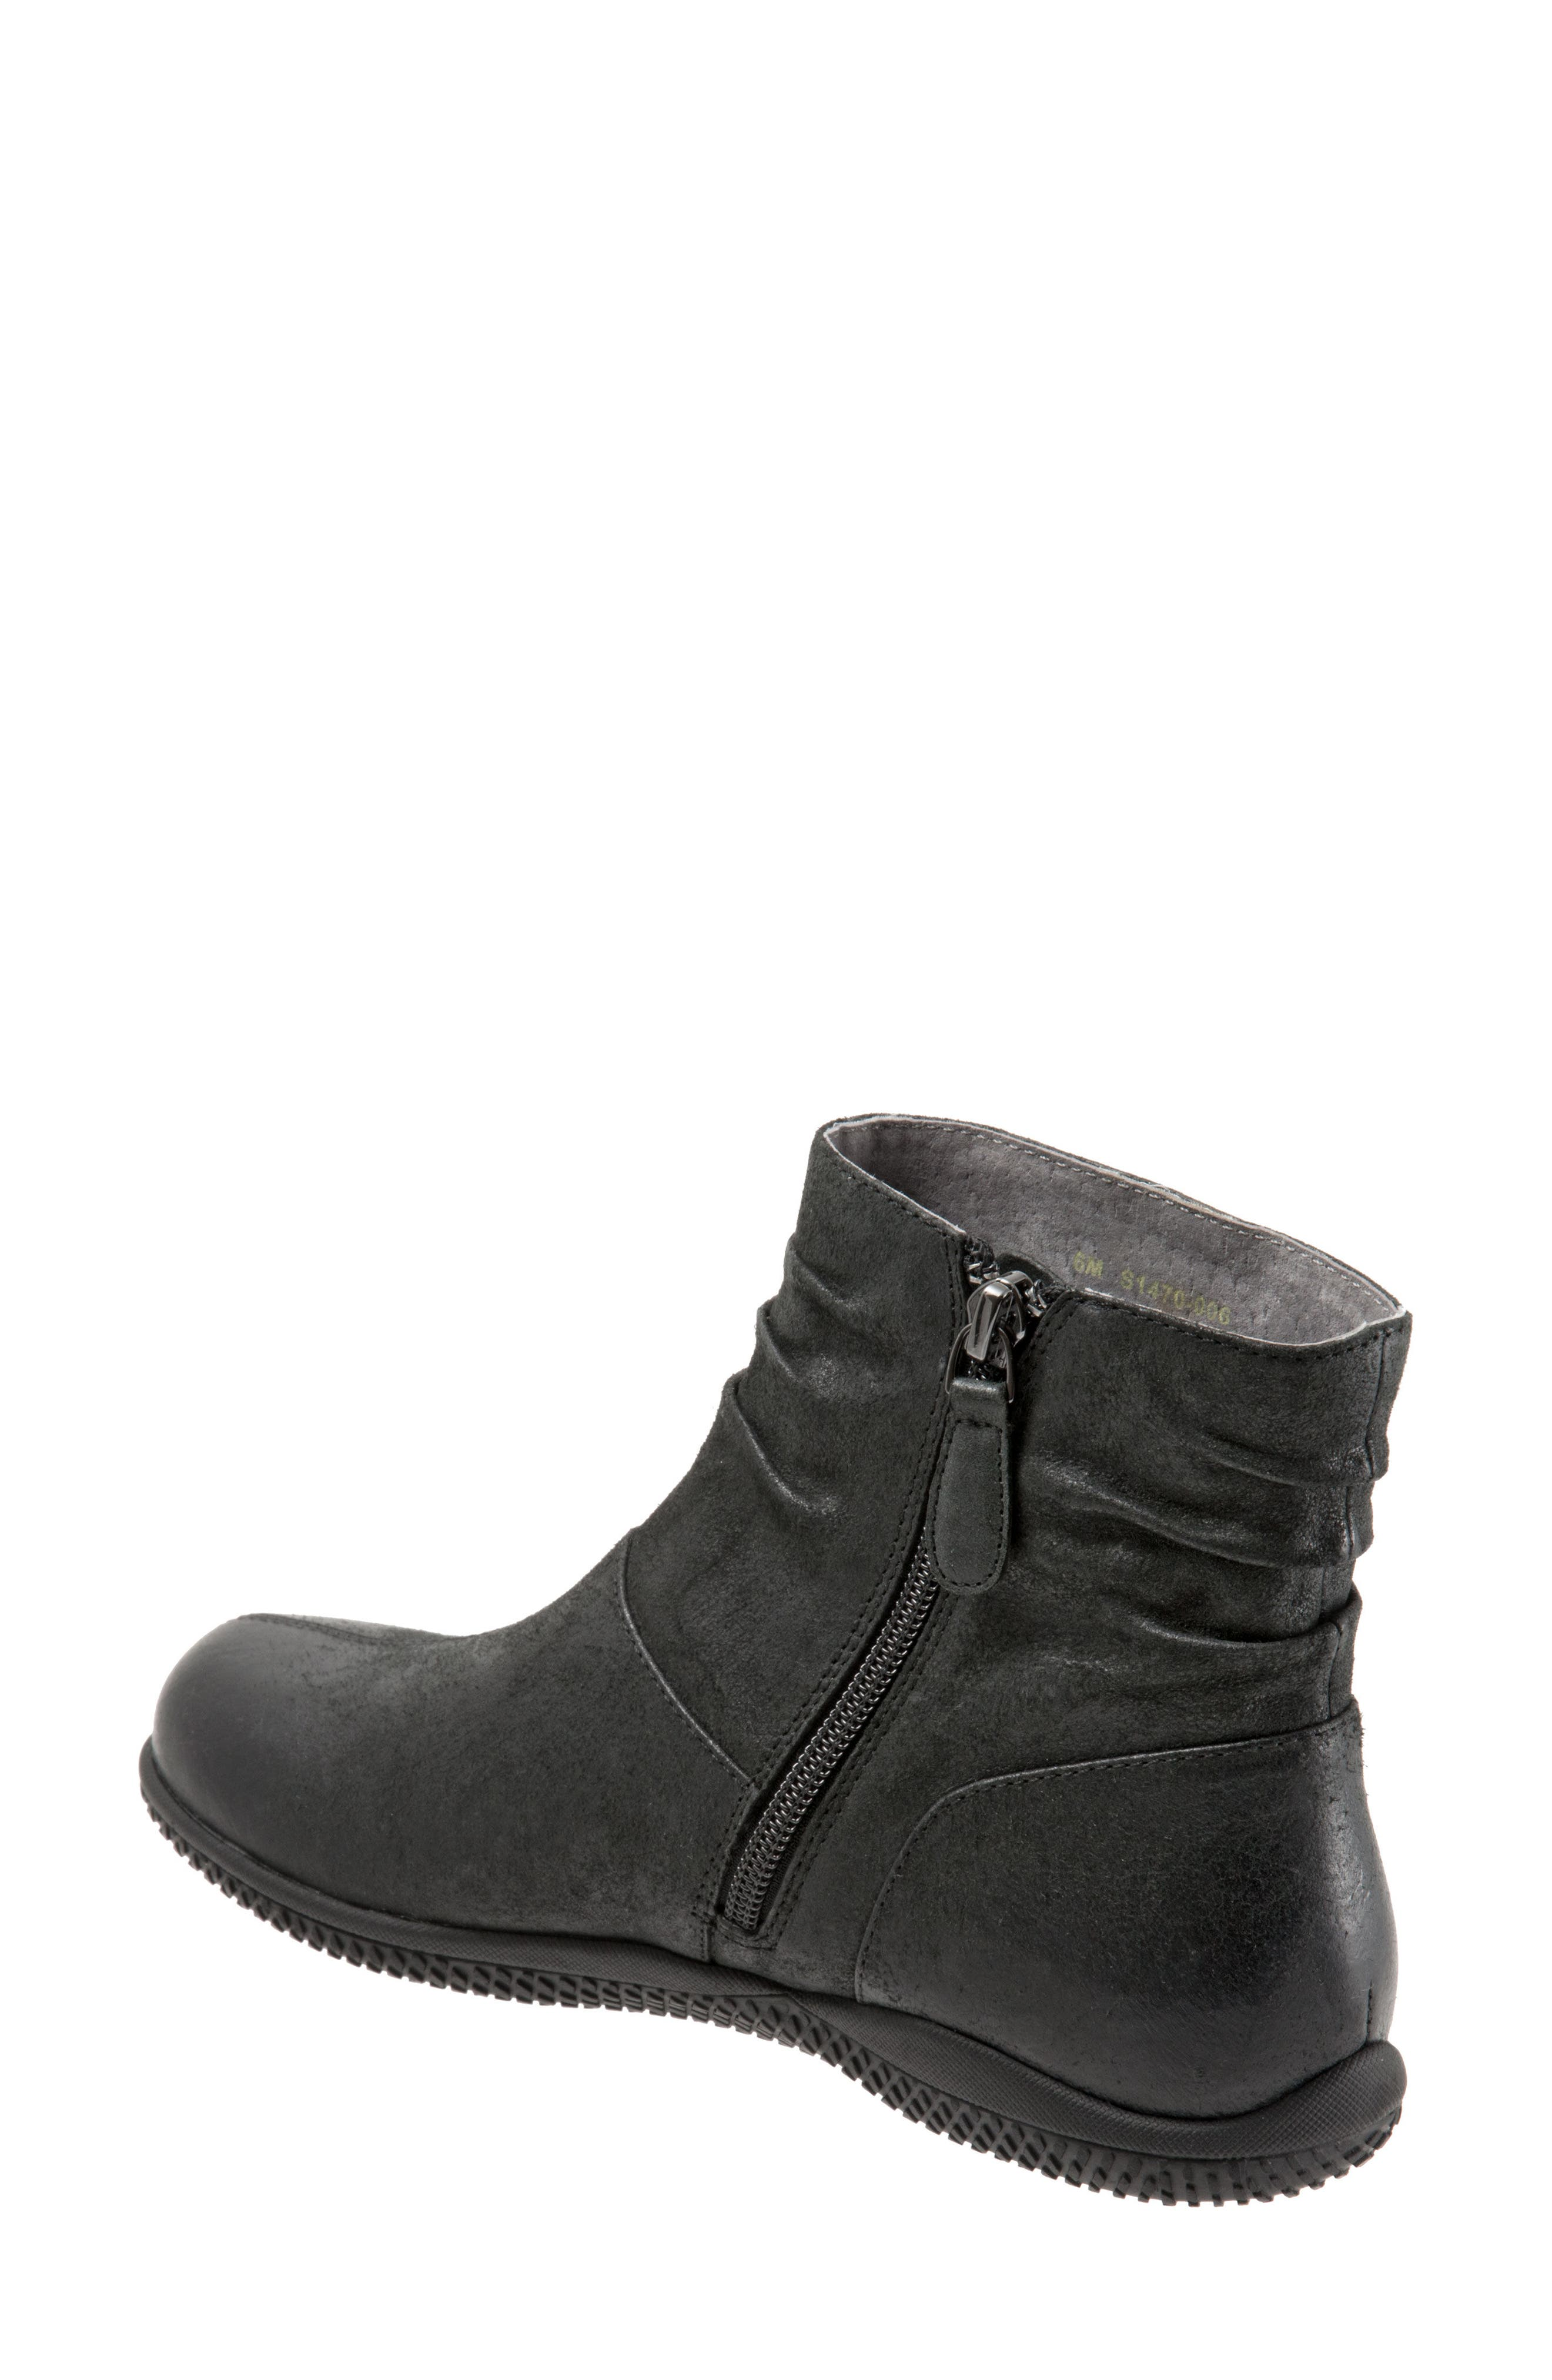 'Hanover' Leather Boot,                             Alternate thumbnail 6, color,